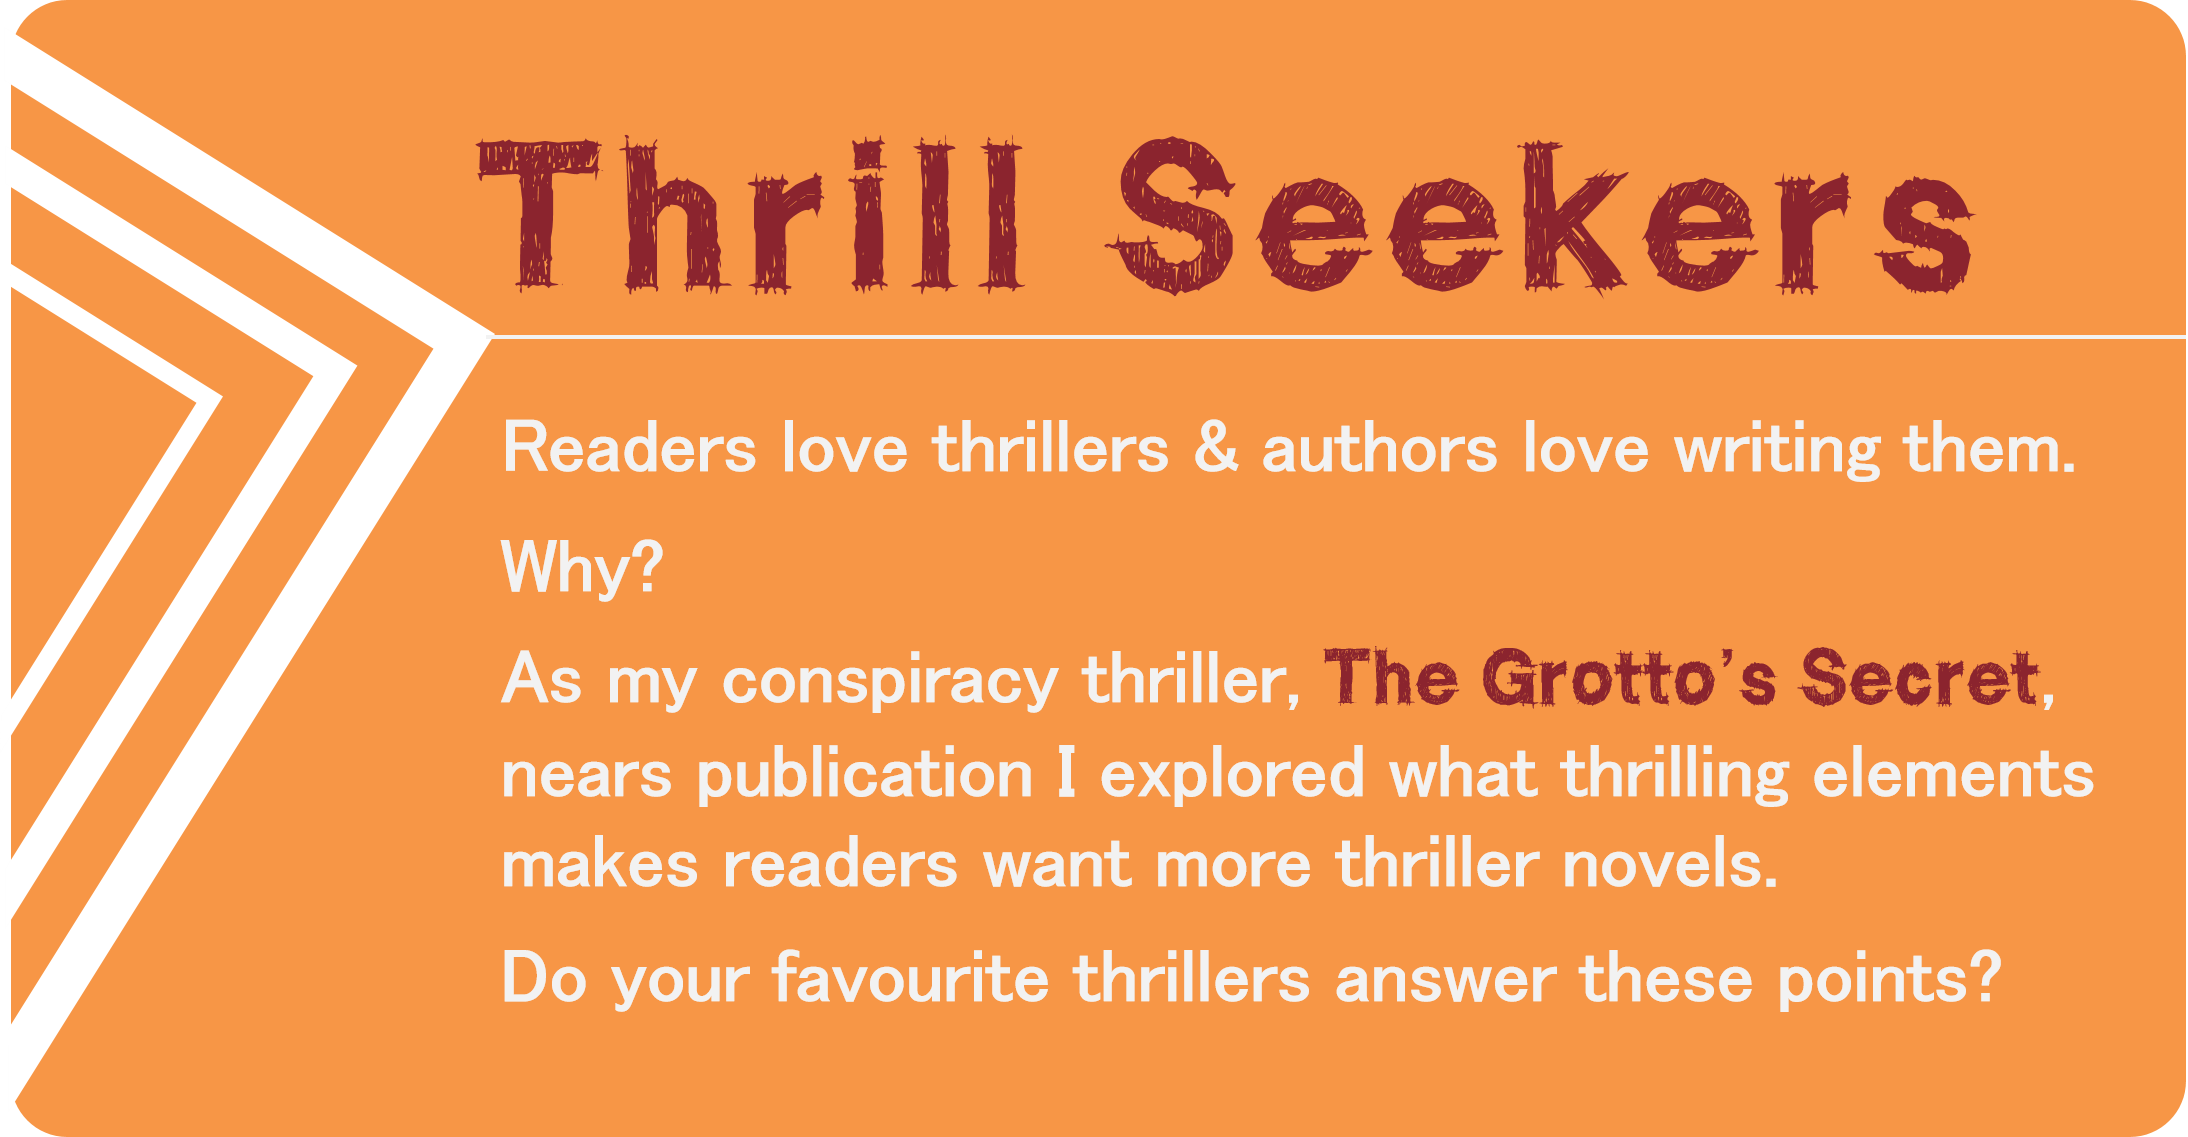 Thrill Seekers ~ Readers love thrillers & authors love writing them.